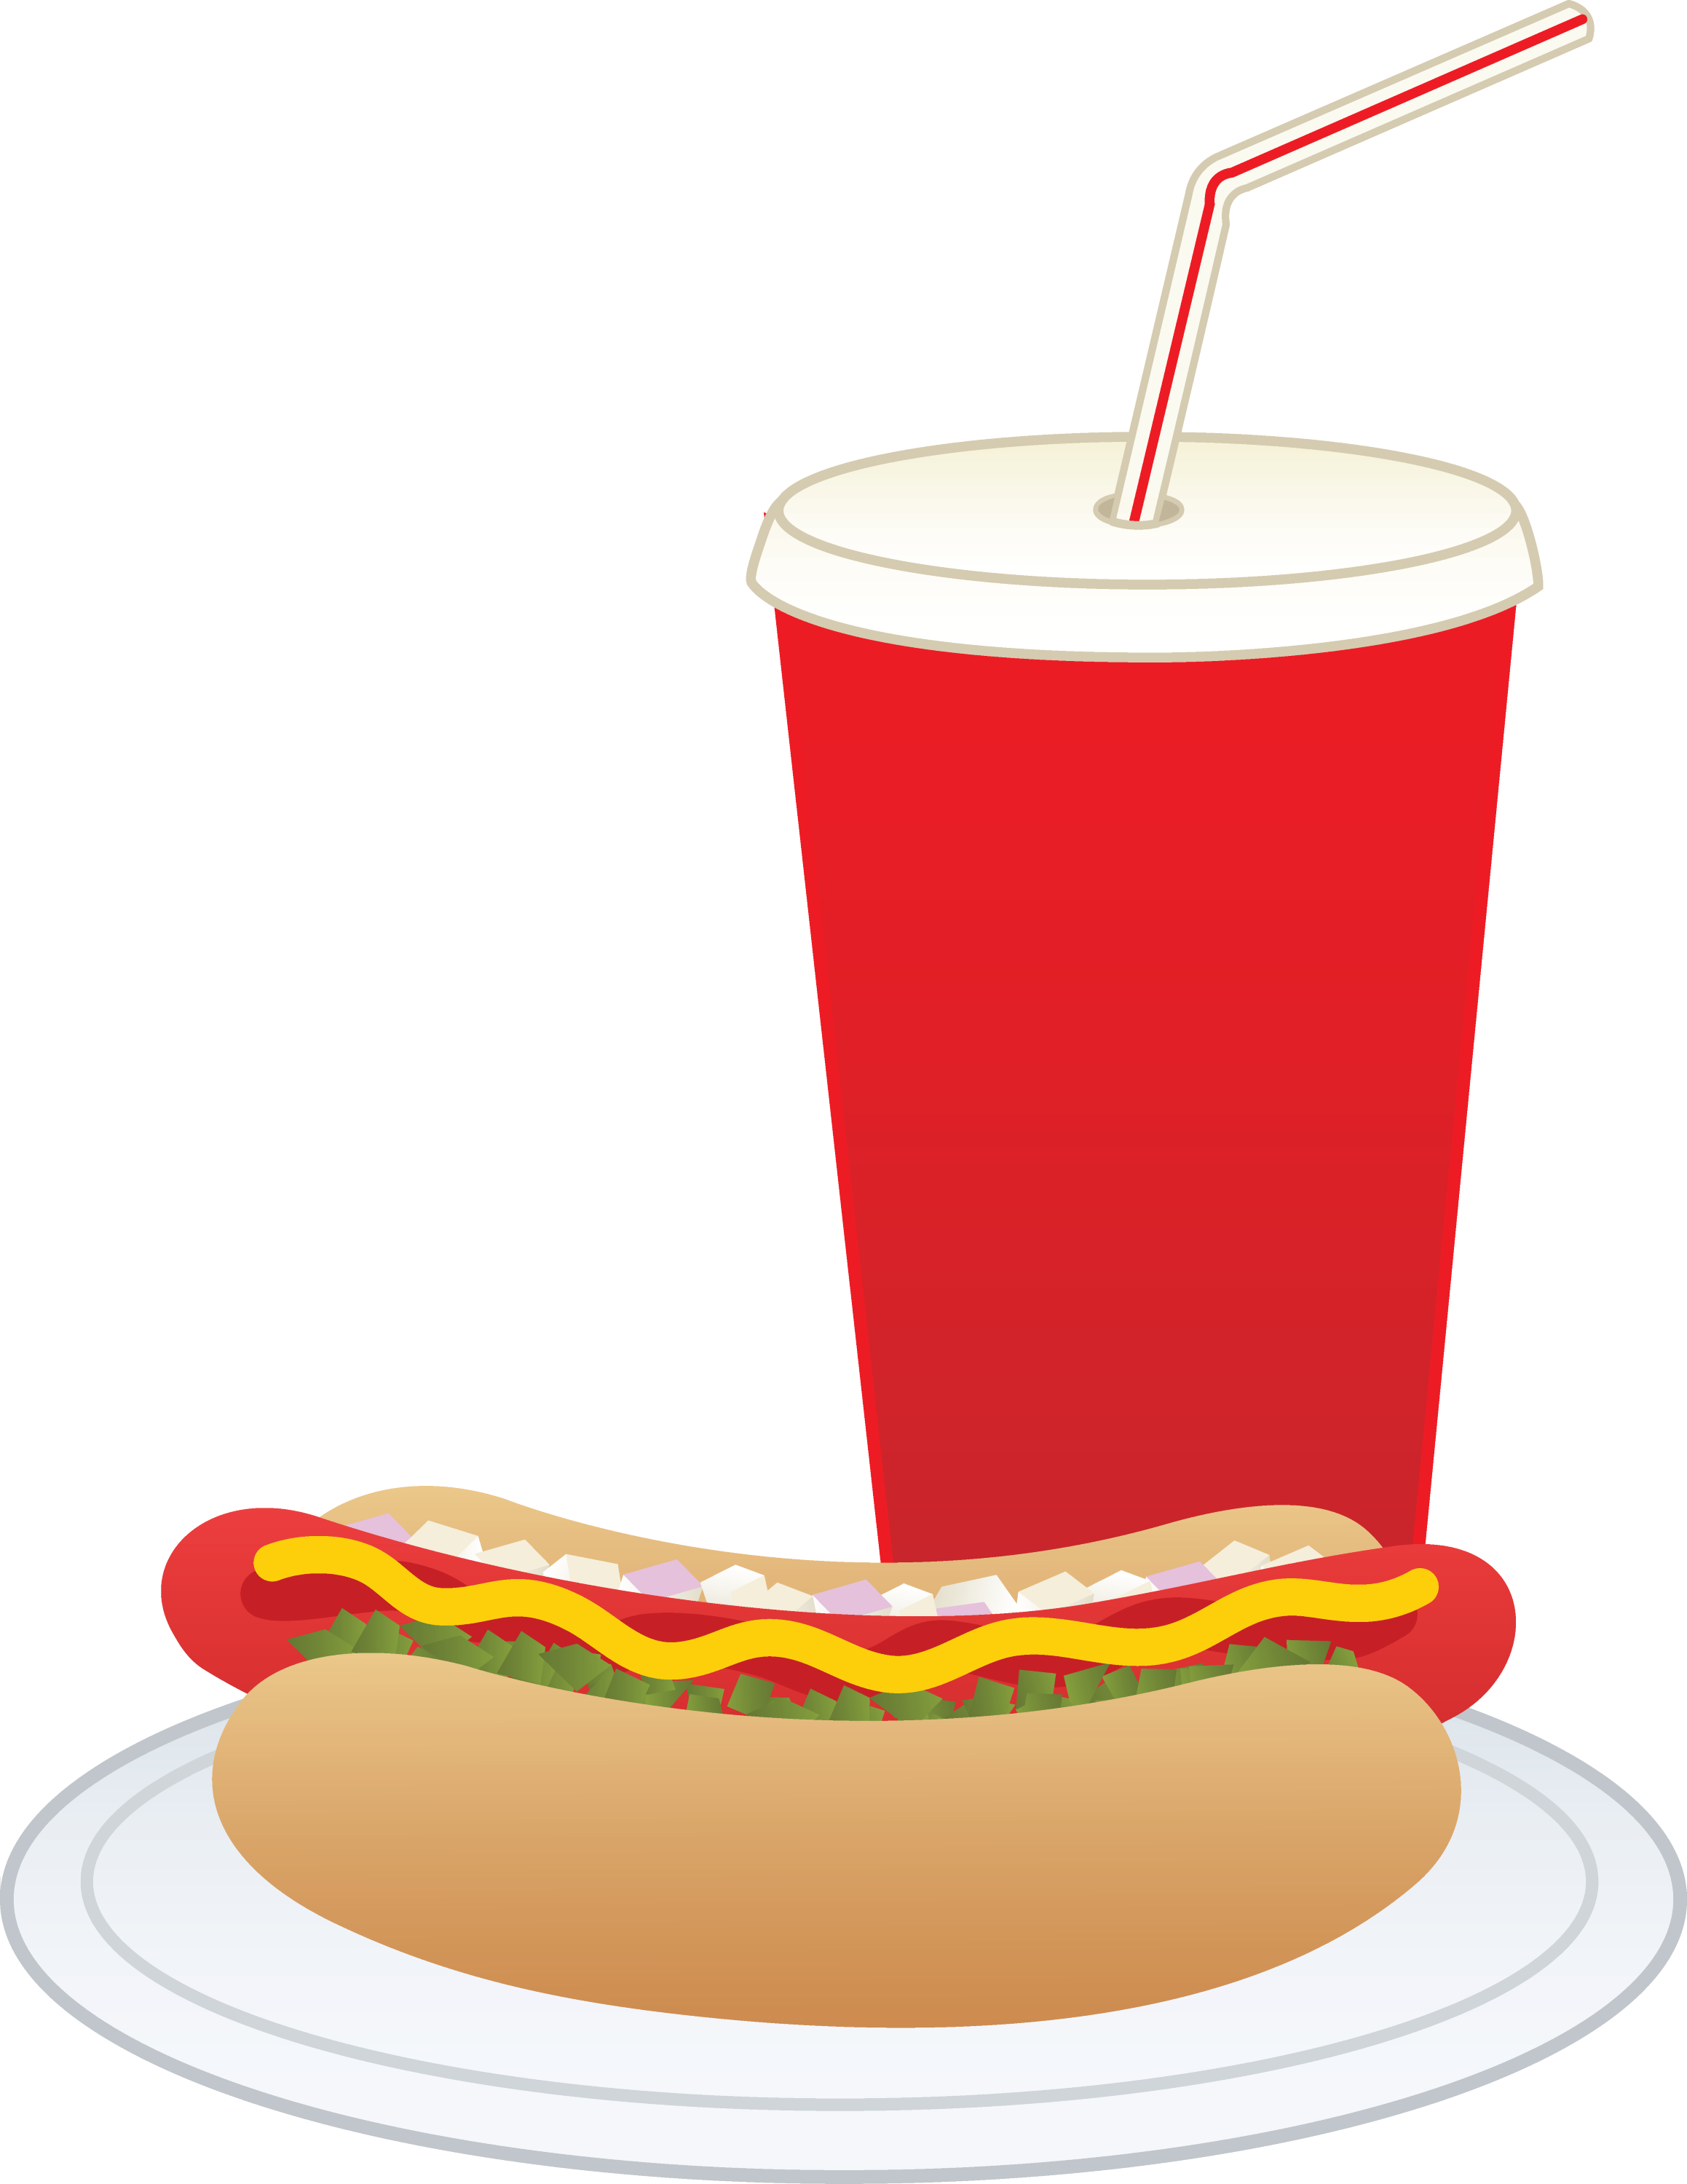 hot dog and soft drink free clip art rh sweetclipart com soda clipart black and white sofa clipart